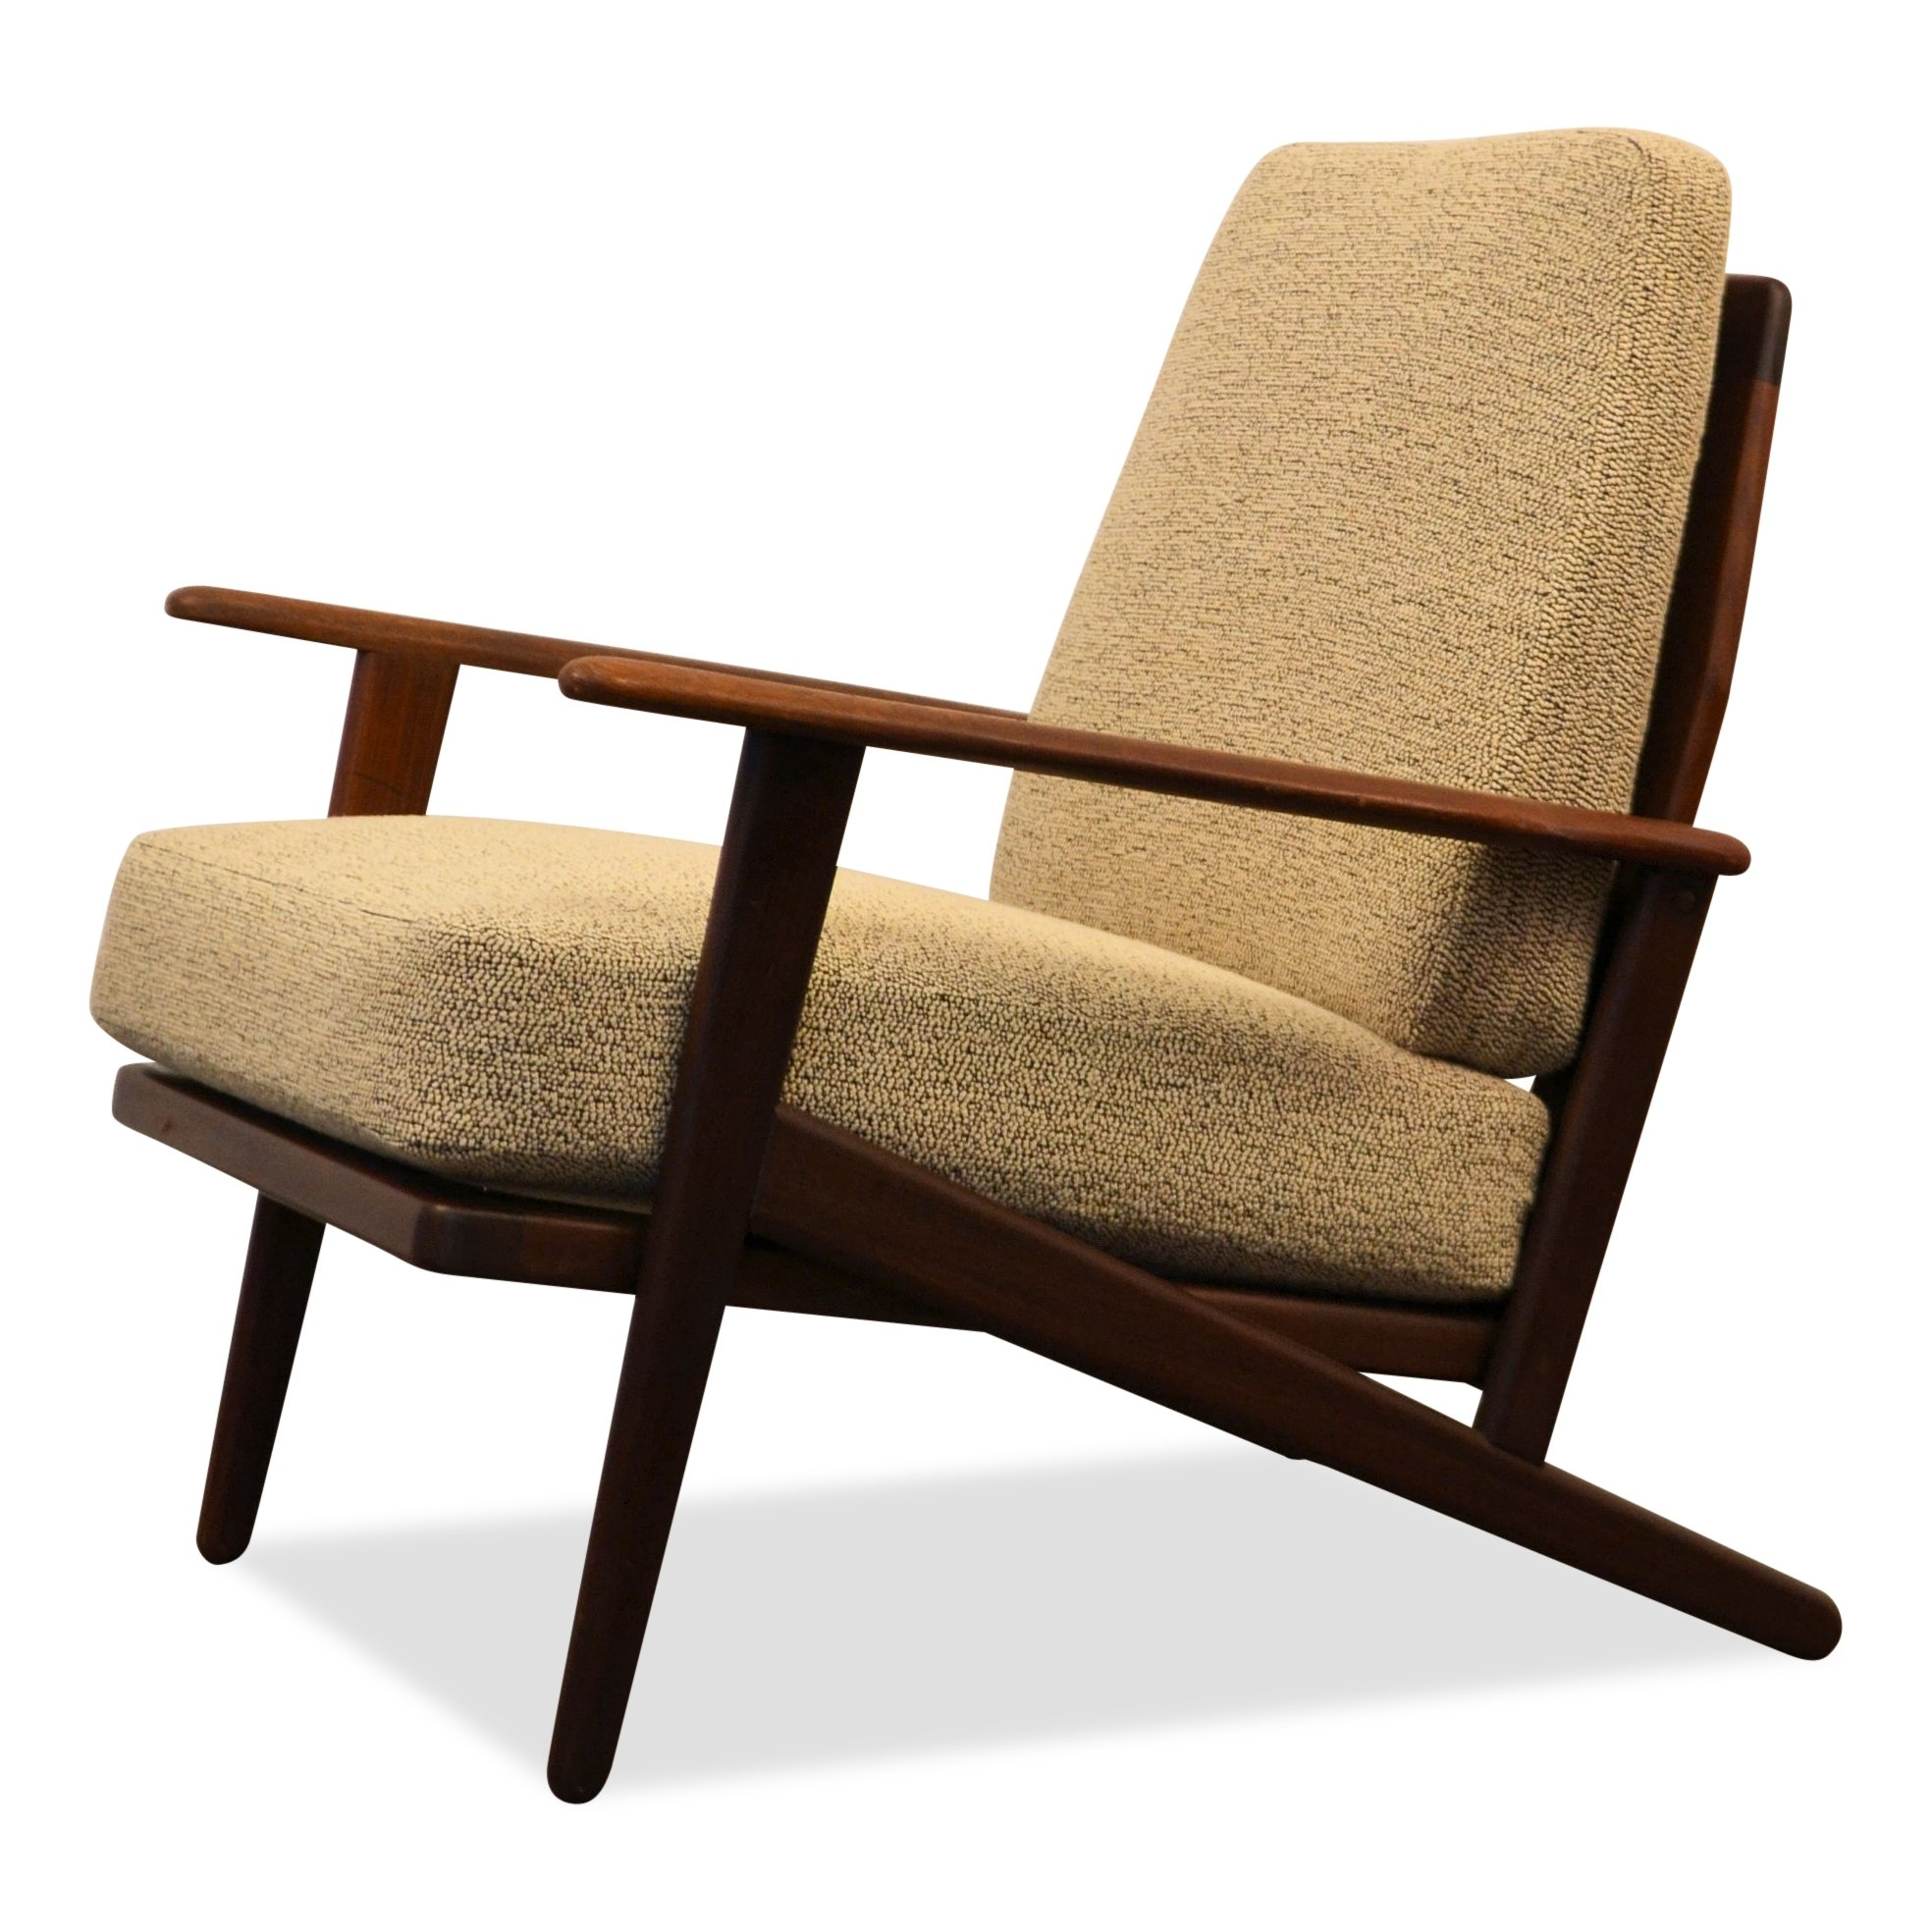 Danish teak lounge chair from the sixties